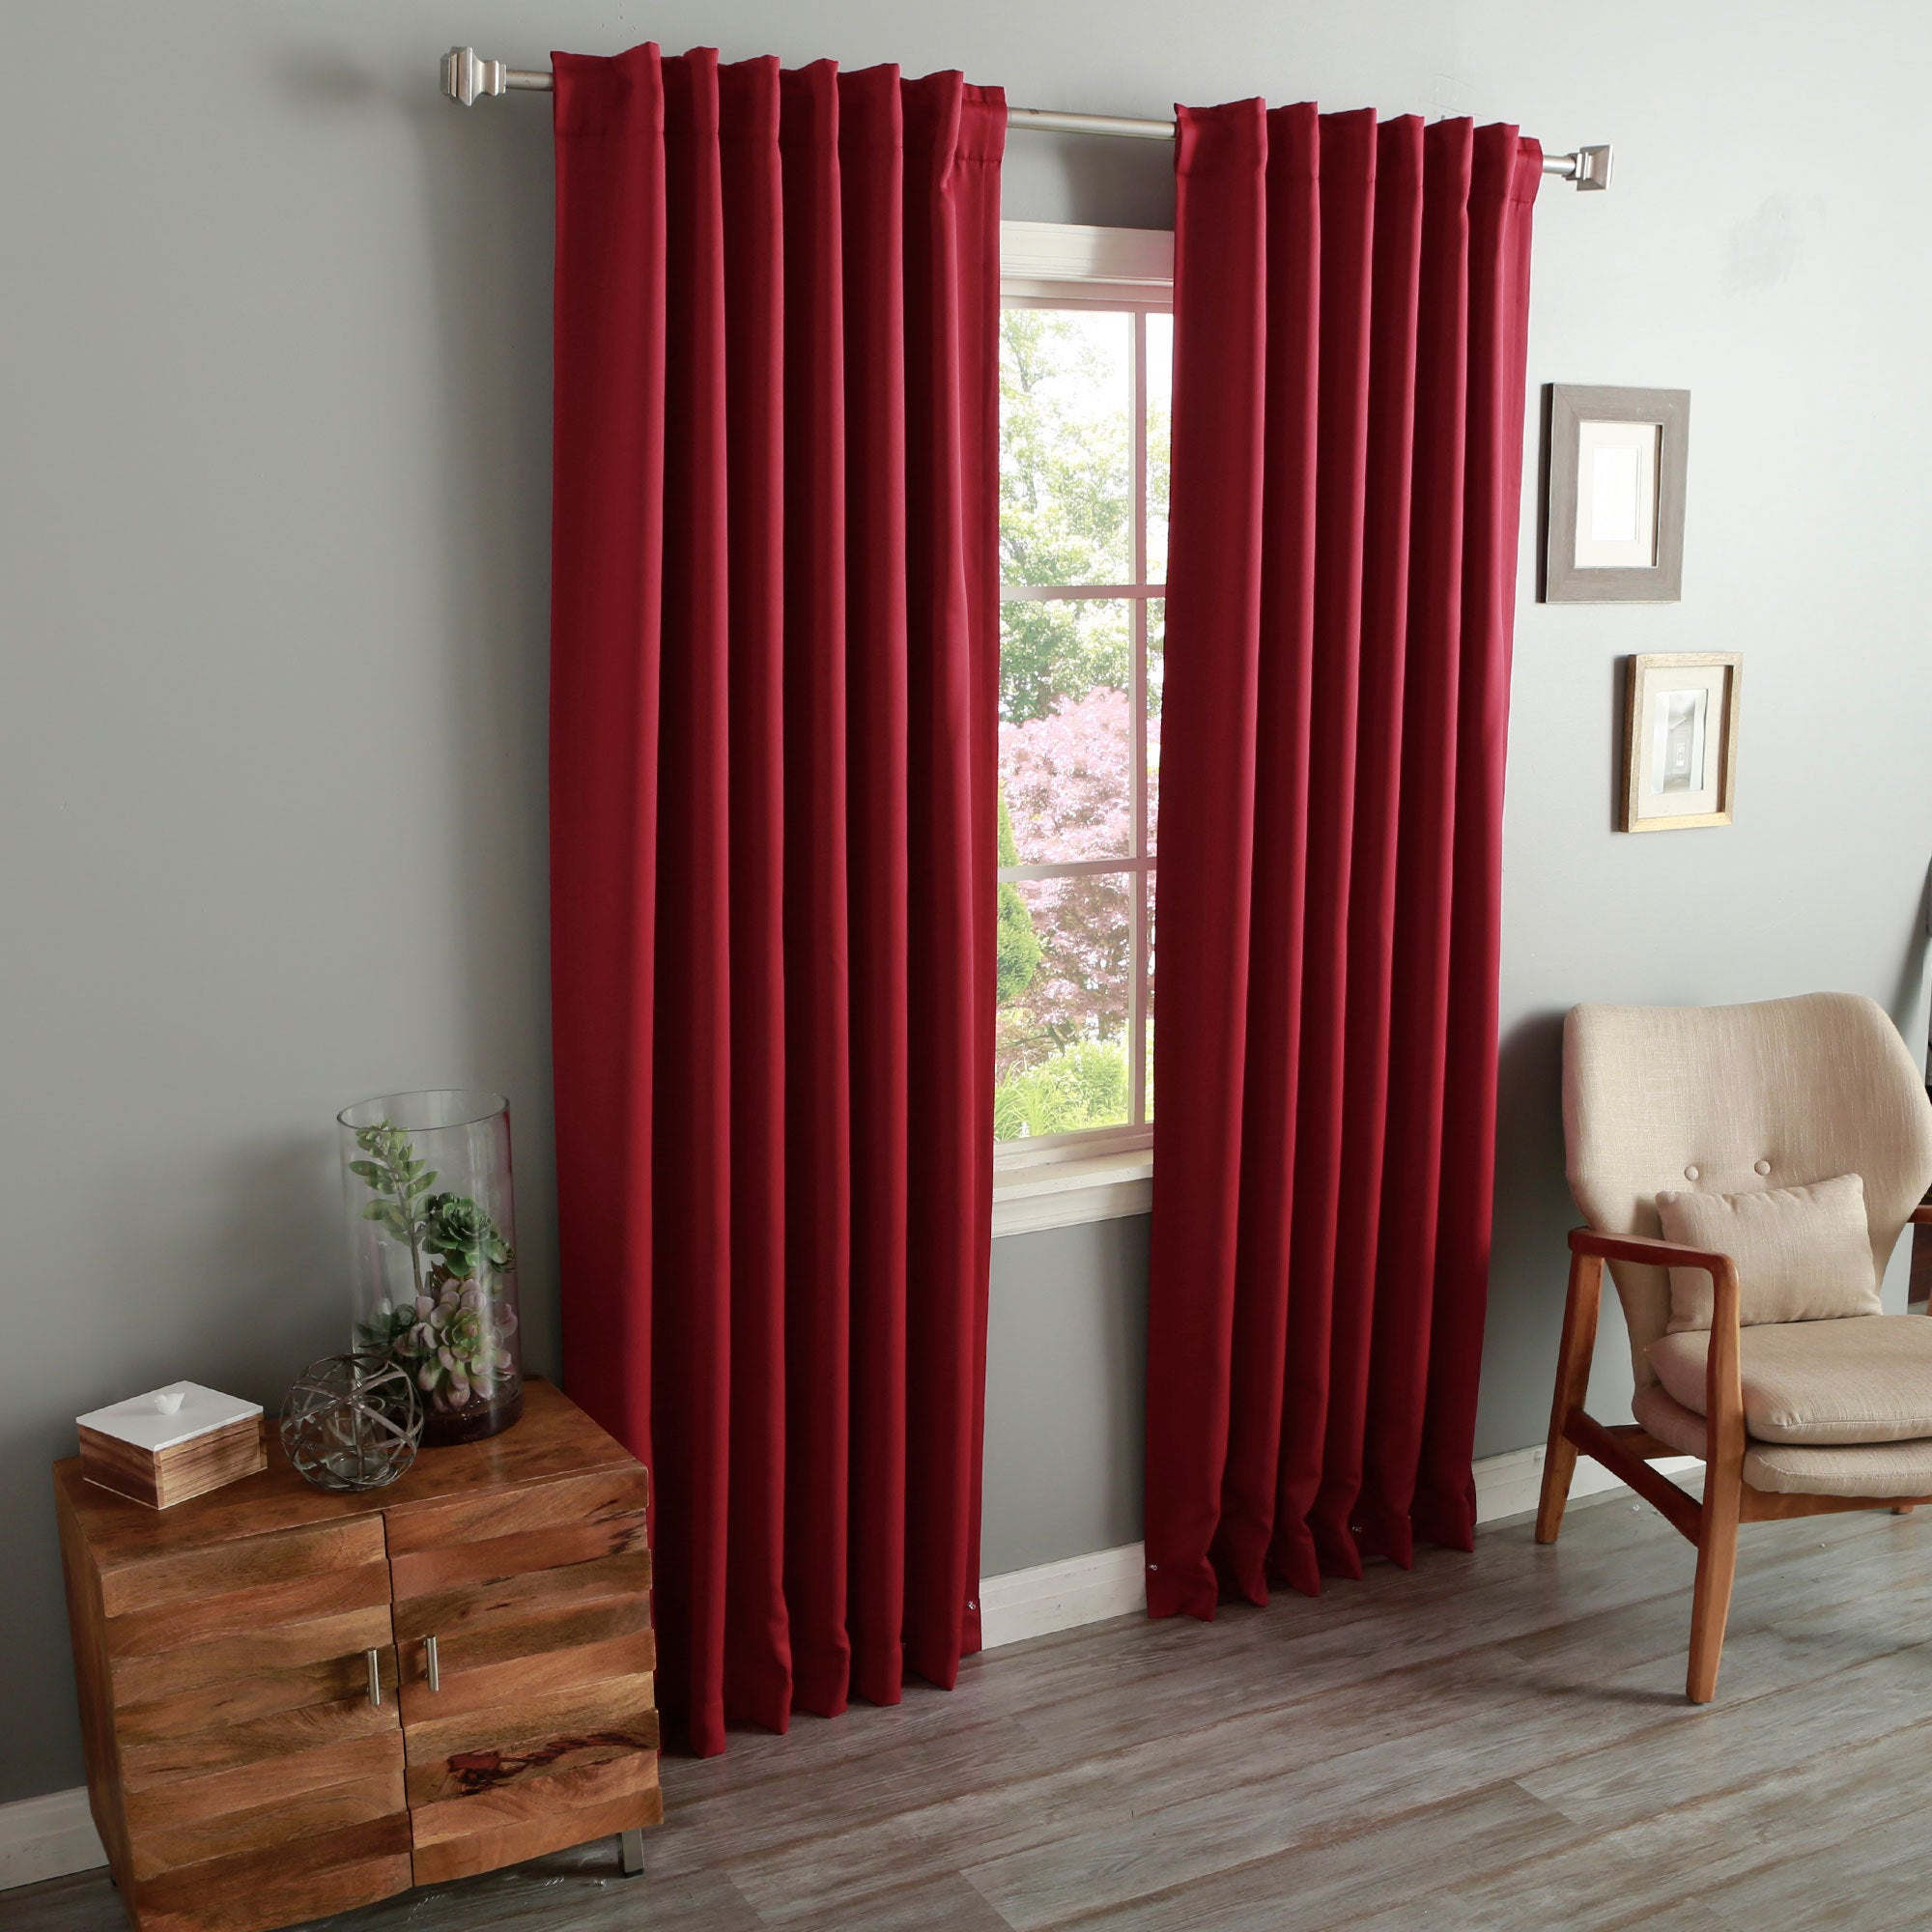 Aurora Home Insulated Thermal Blackout 84-inch Curtain Panel Pair ...